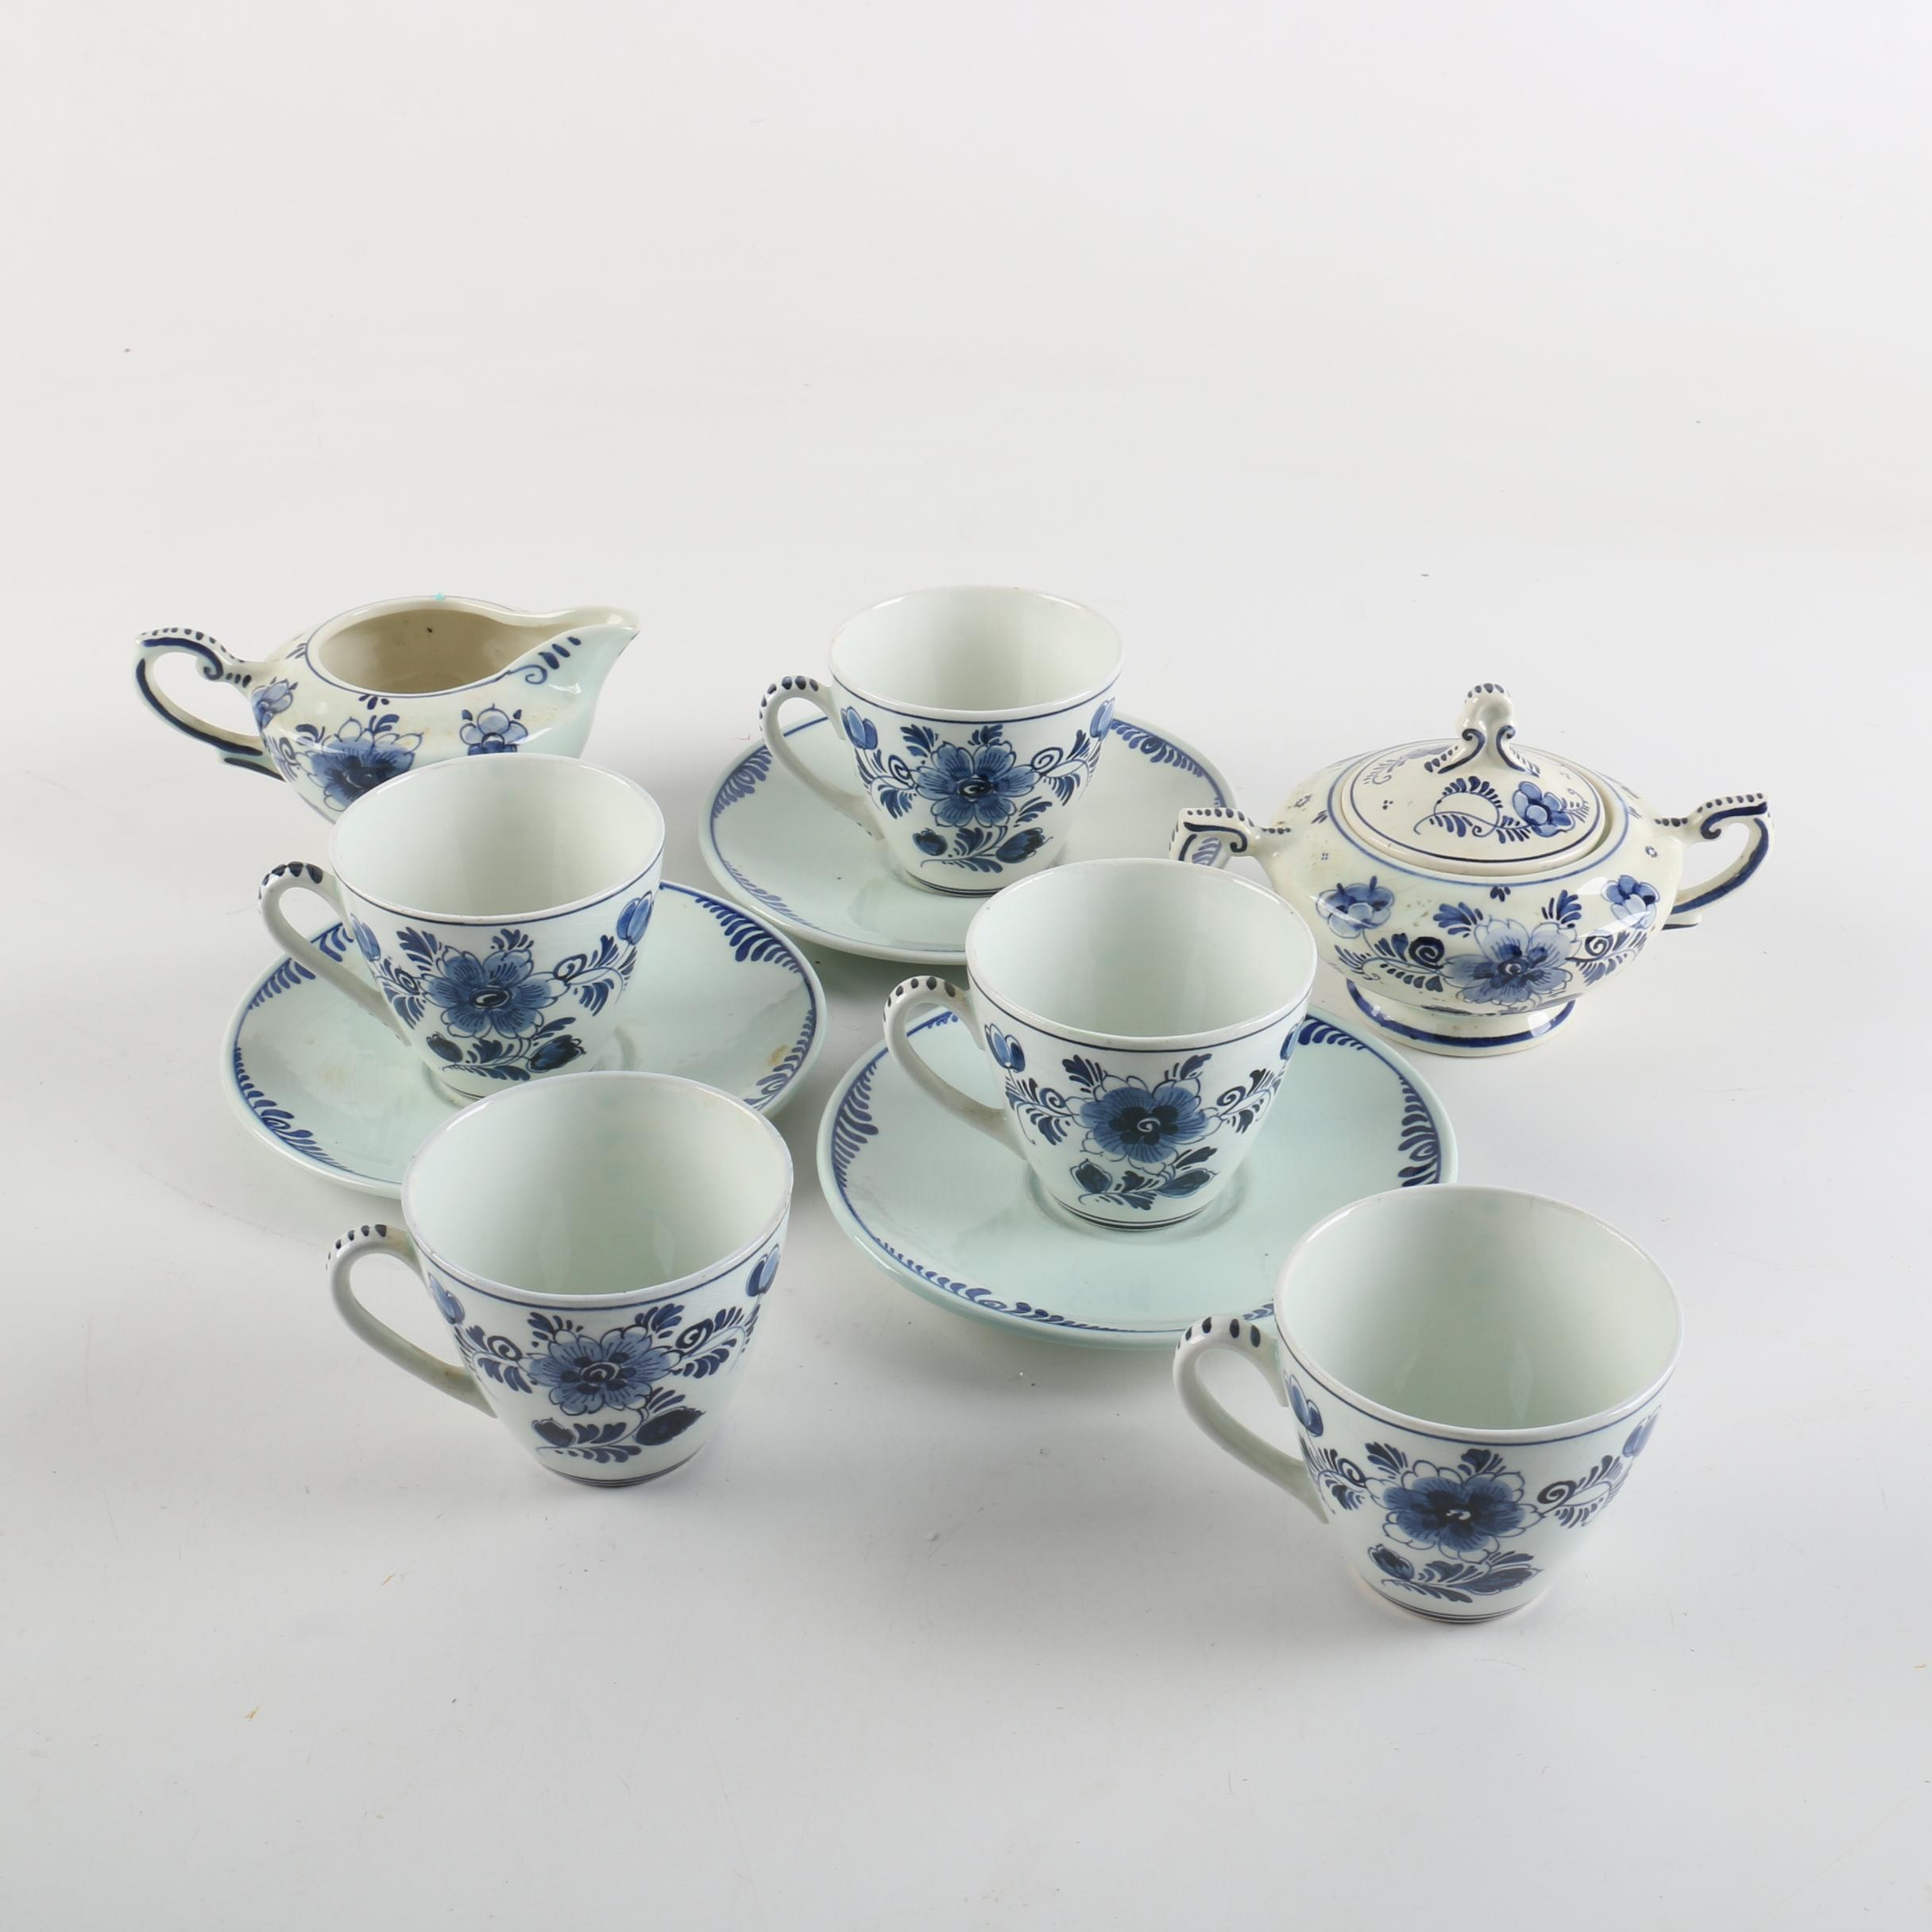 Hand-Painted Delft Earthenware Tableware